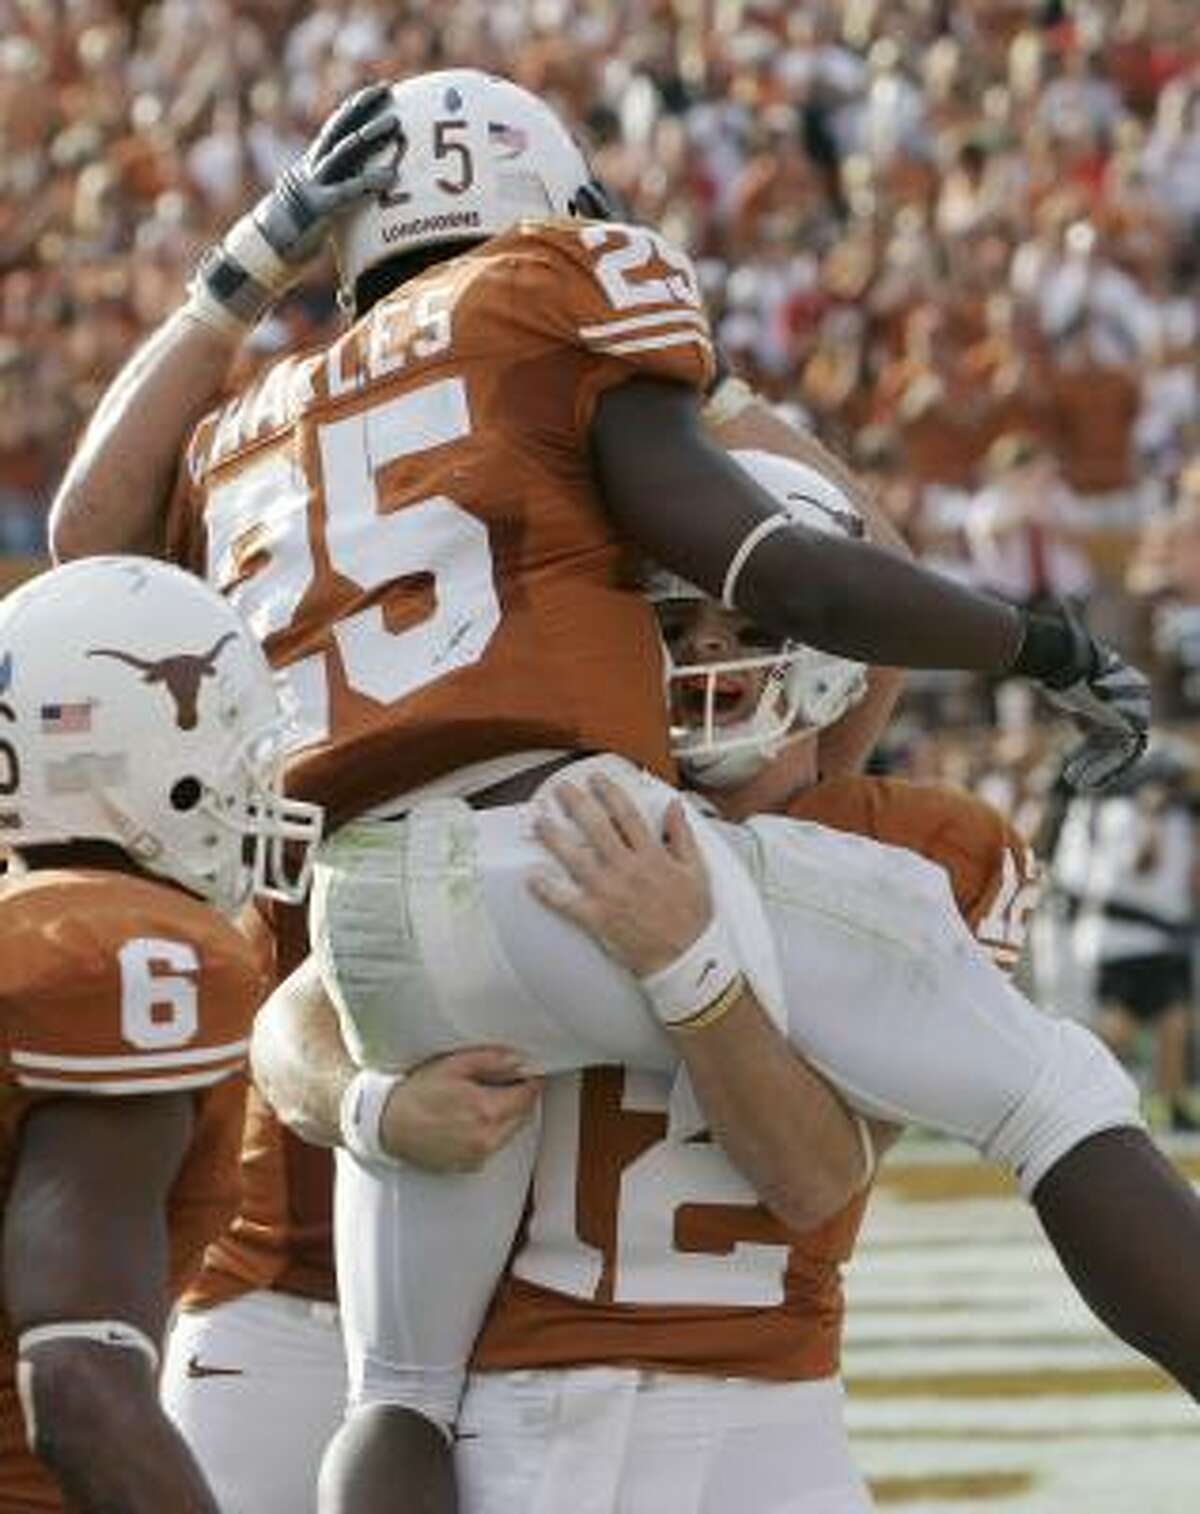 Texas running back Jamaal Charles (25) leaps in the arms of quarterback Colt McCoy (12) after he scored a touchdown.